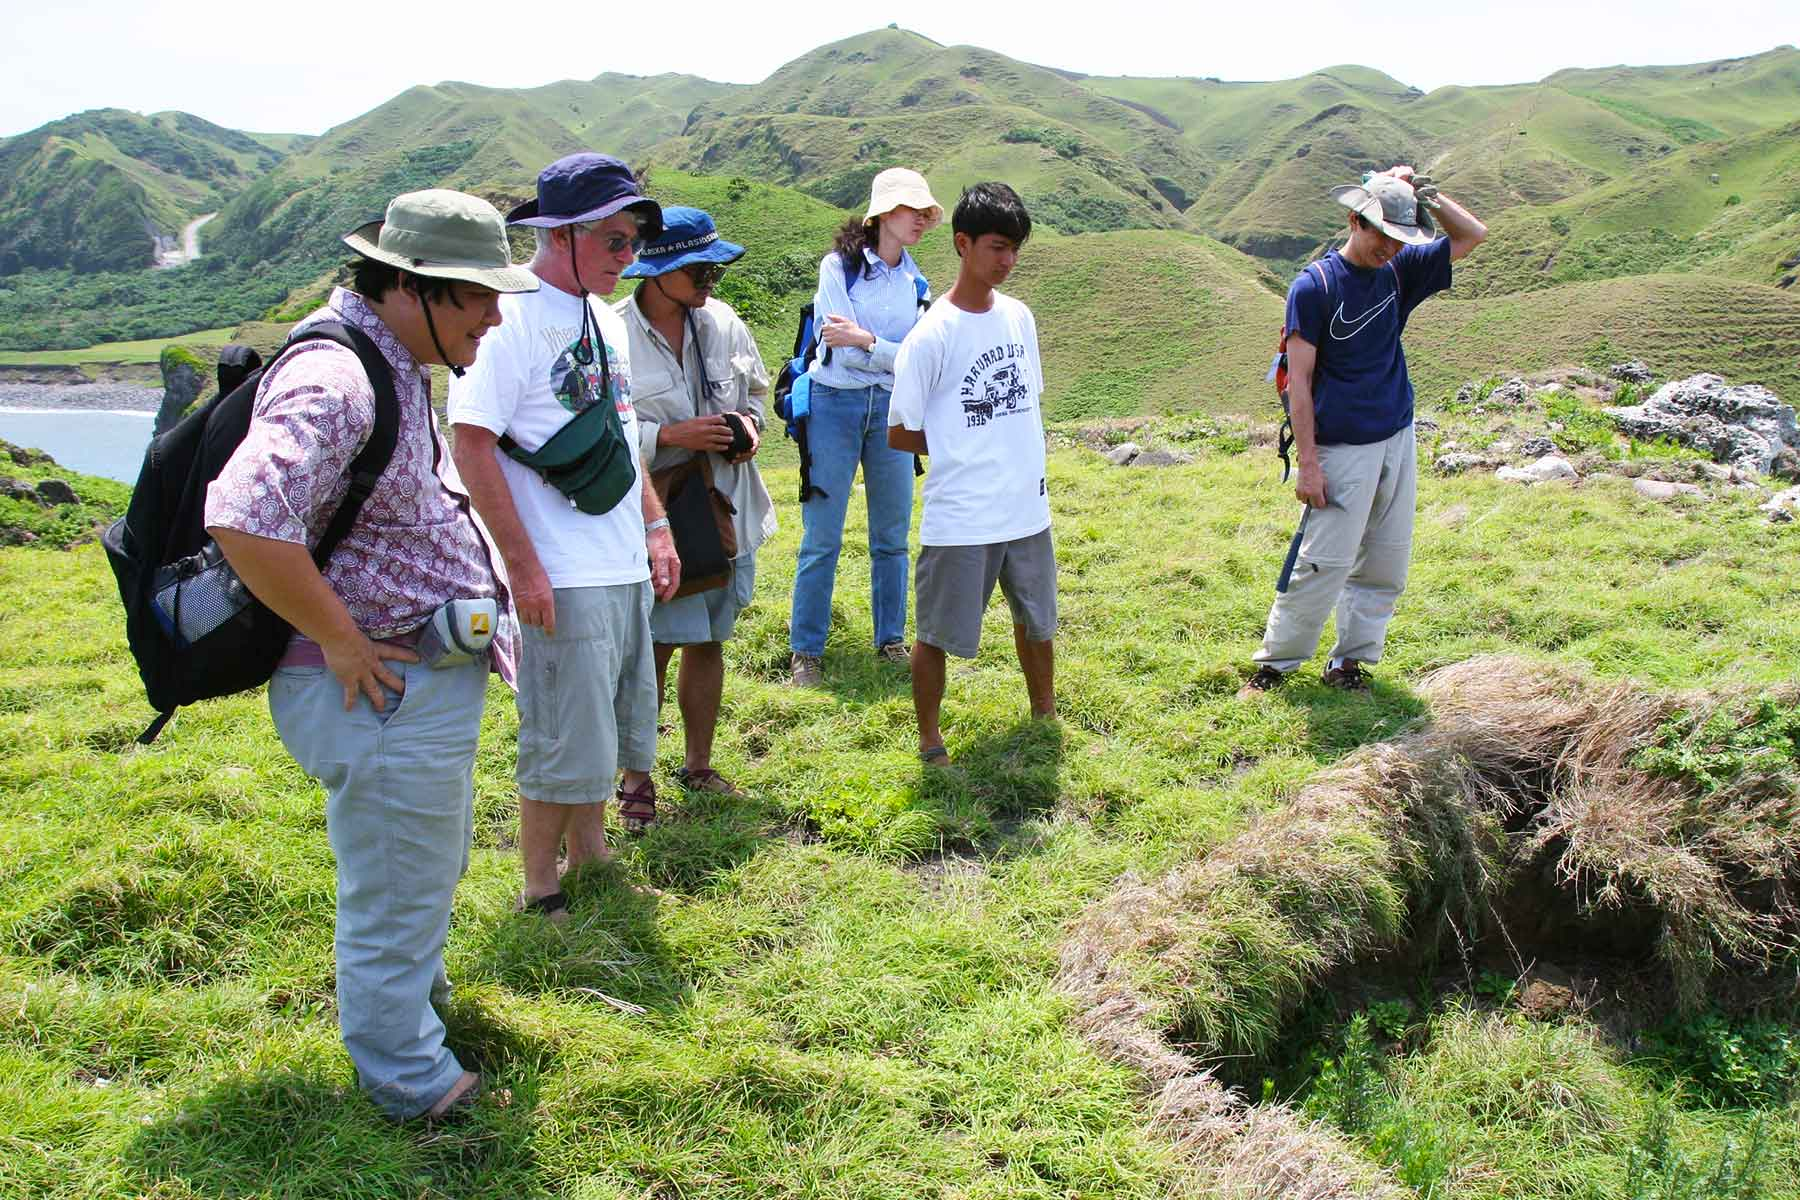 Batanes Islands Photo Journal - Peter Bellwood - Austronesian Archaeology - Exploratory Research - Dr Steven Andrew Martin